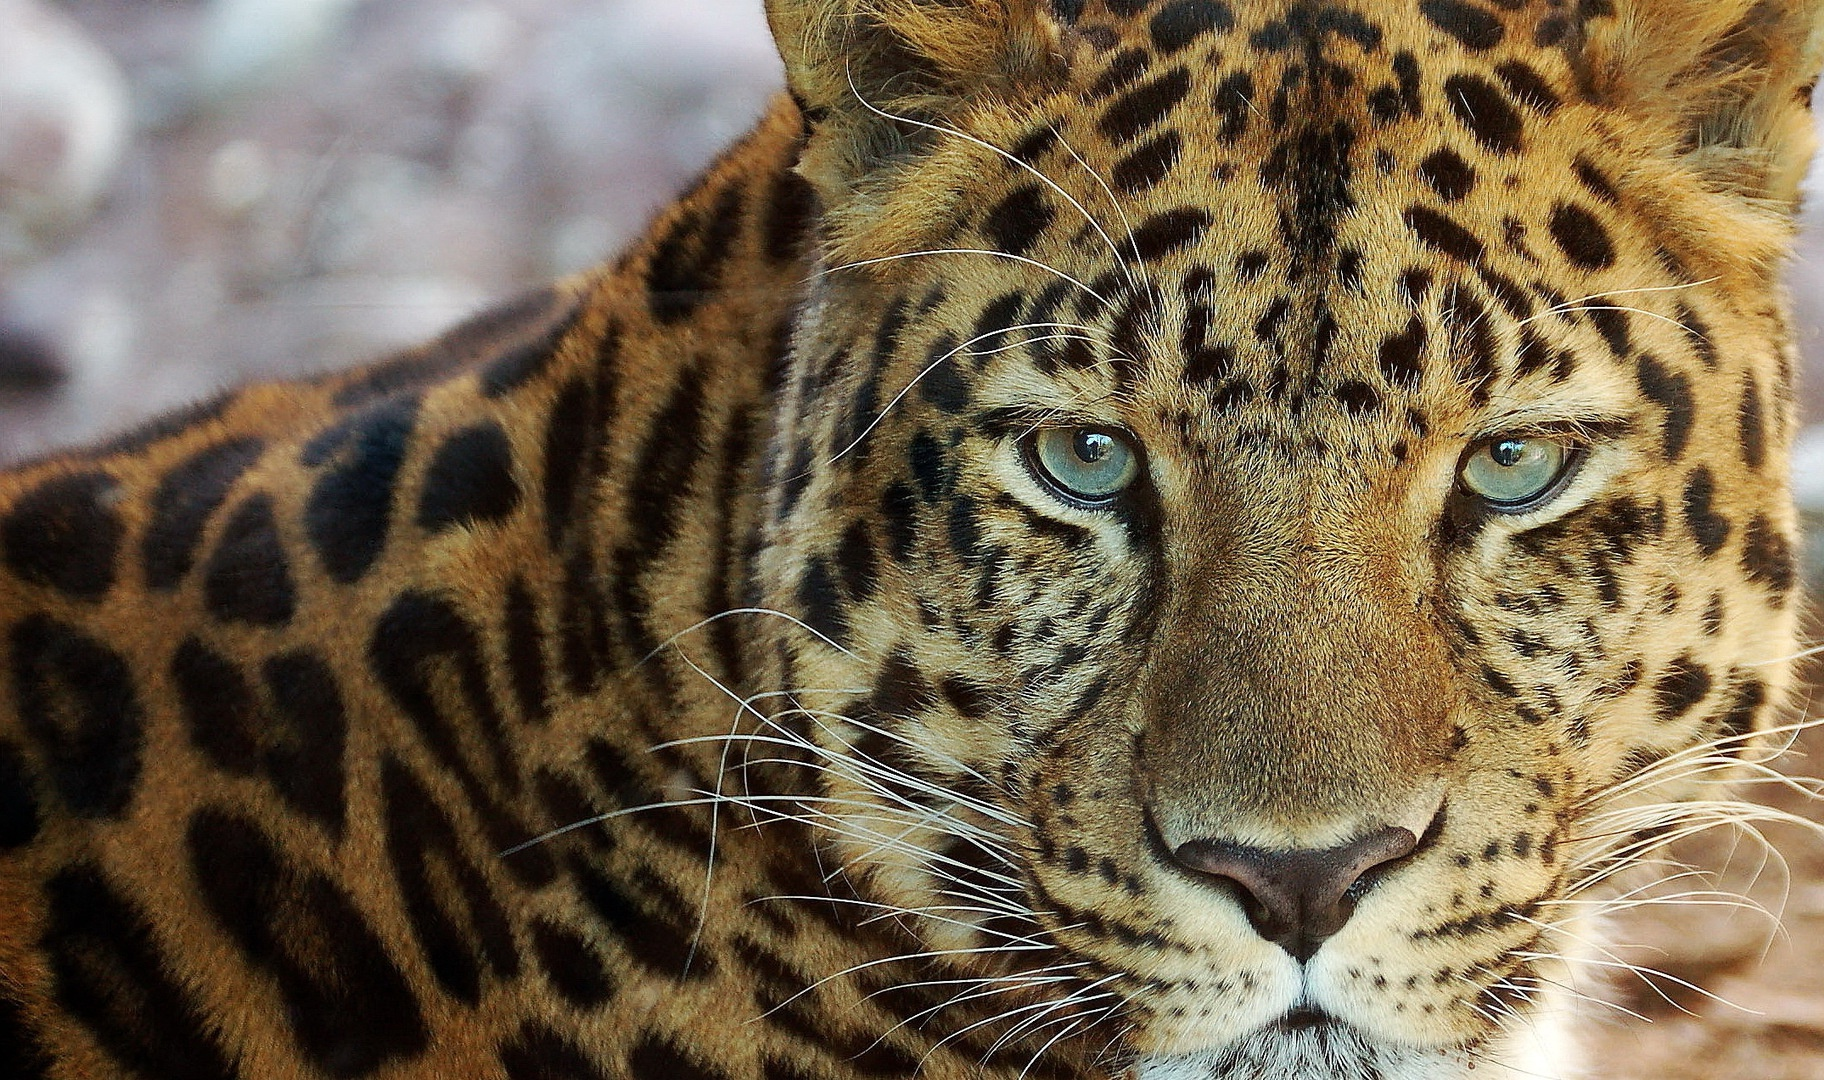 Leopard wallpapers and images - wallpapers, pictures, photos